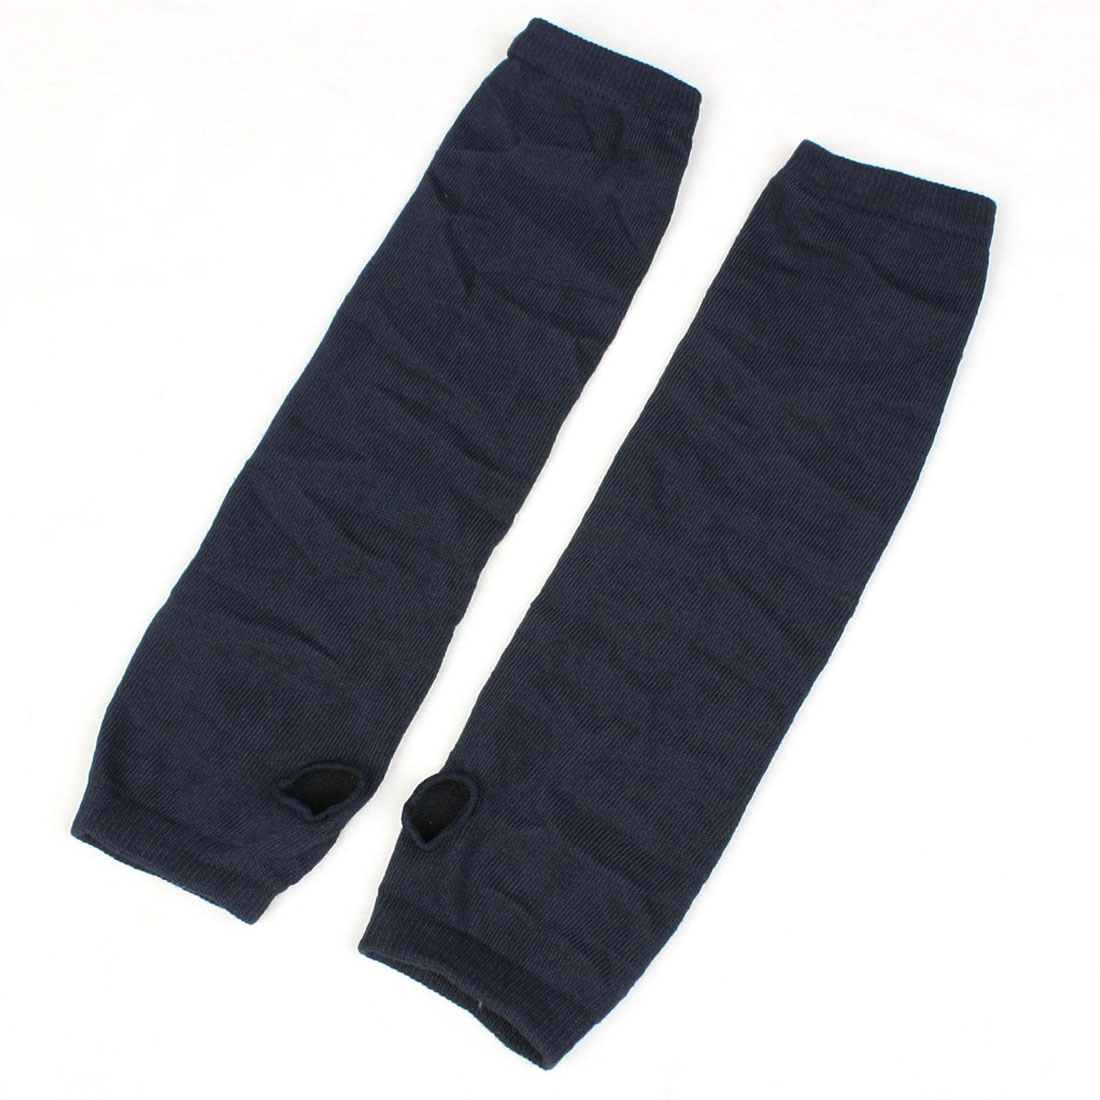 Pair Navy Blue Stretchy Fingerless Winter Arm Warmers Gloves for Ladies